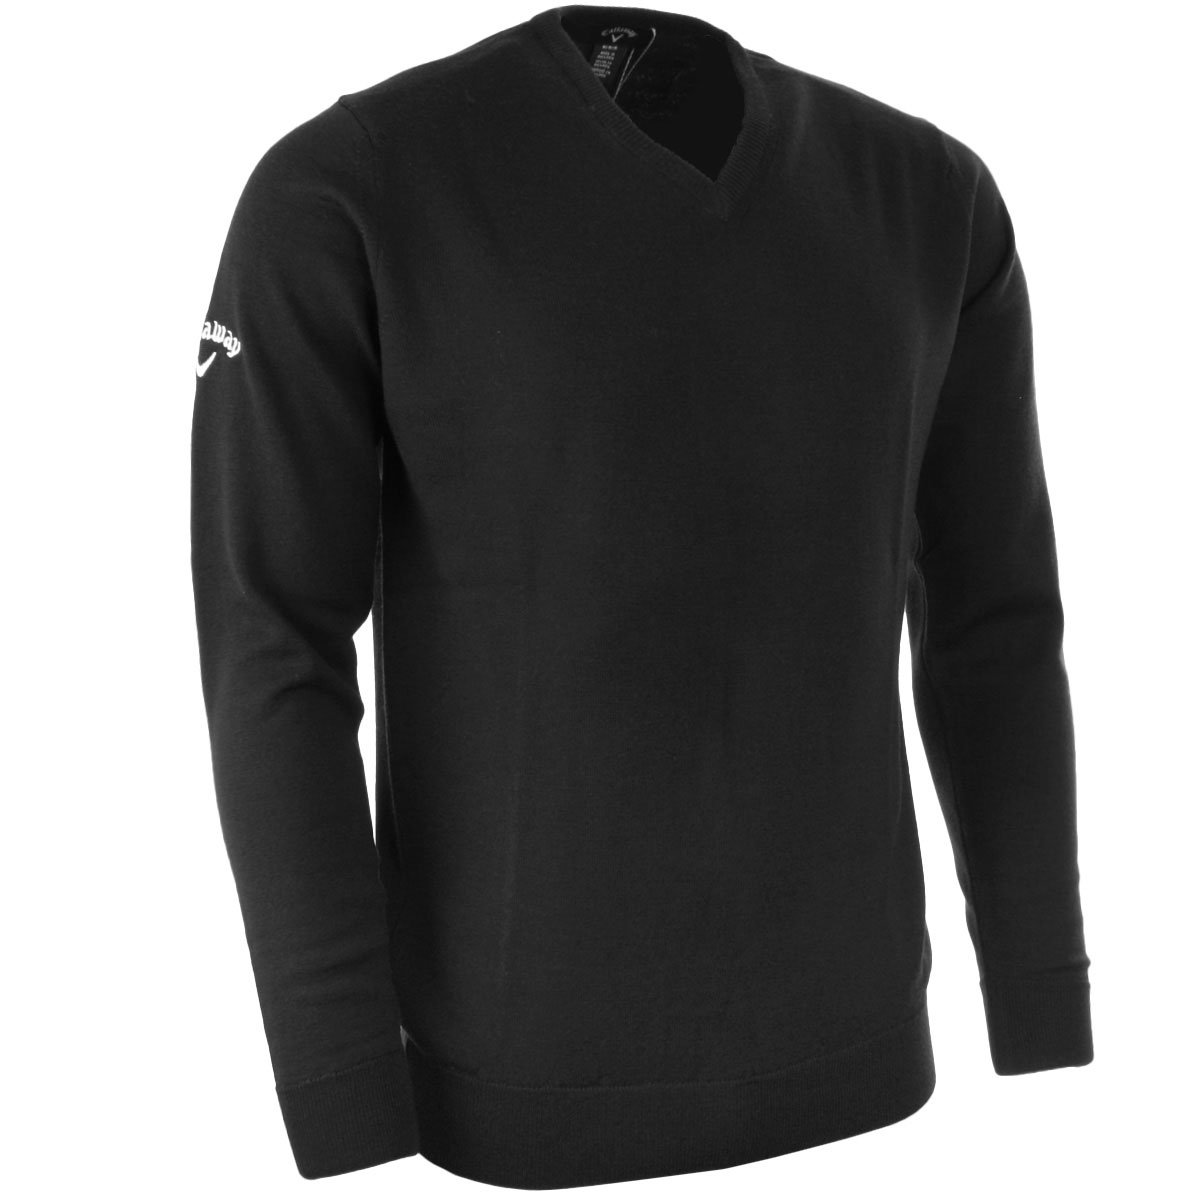 Callaway Golf Merino High v-neck Sweater Jersey, Herren